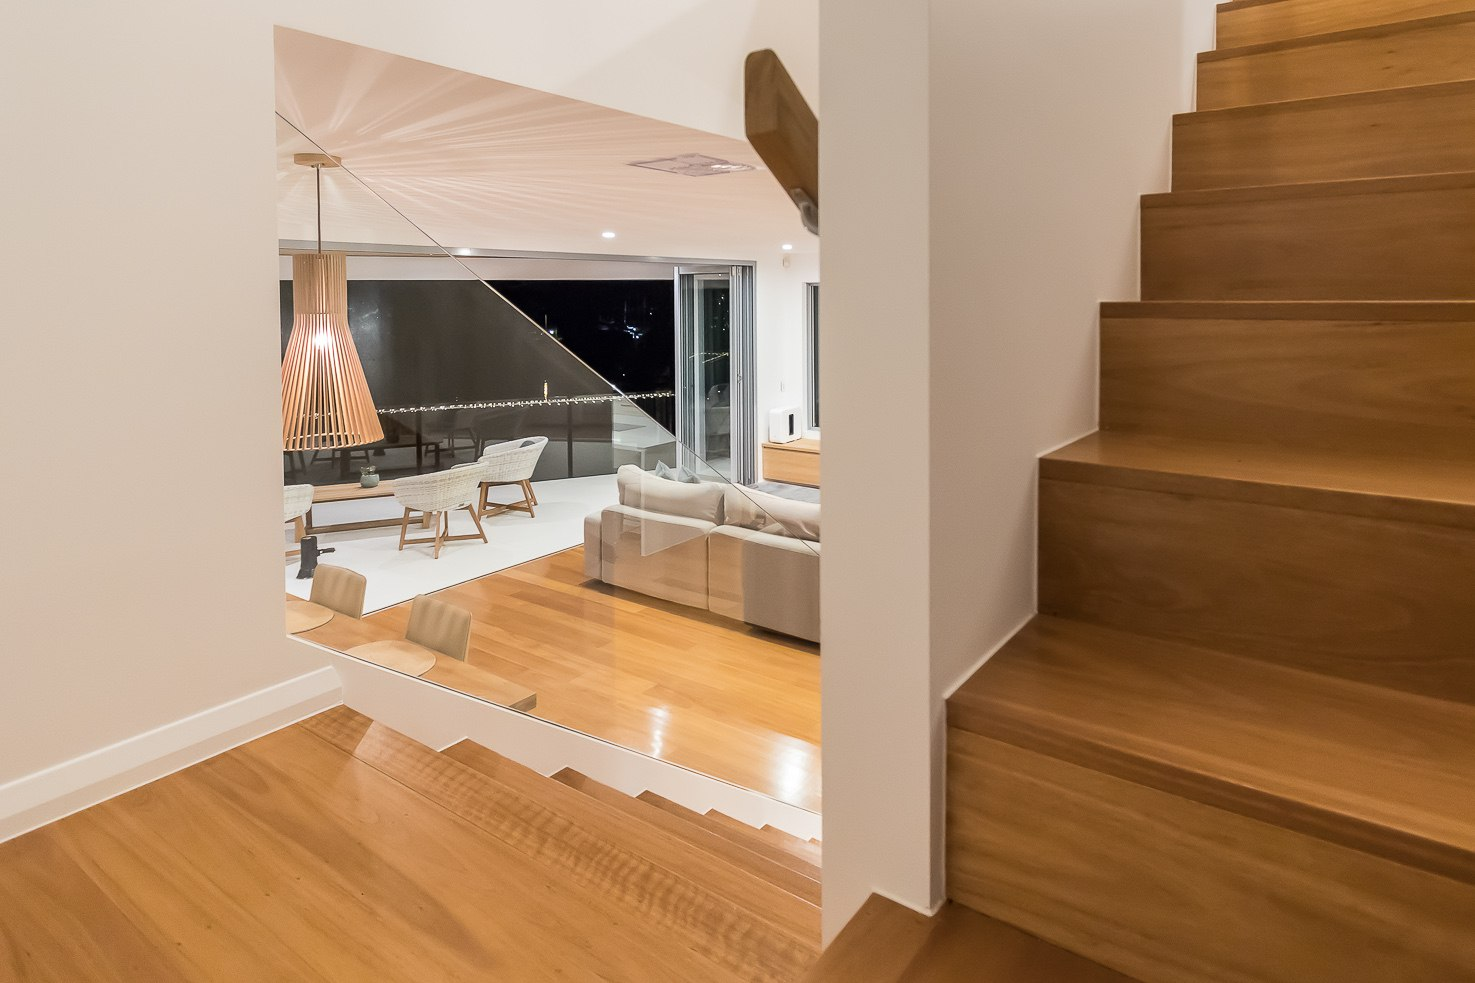 Brisbane Manly contemporary home looking from the stiars into the lounge area